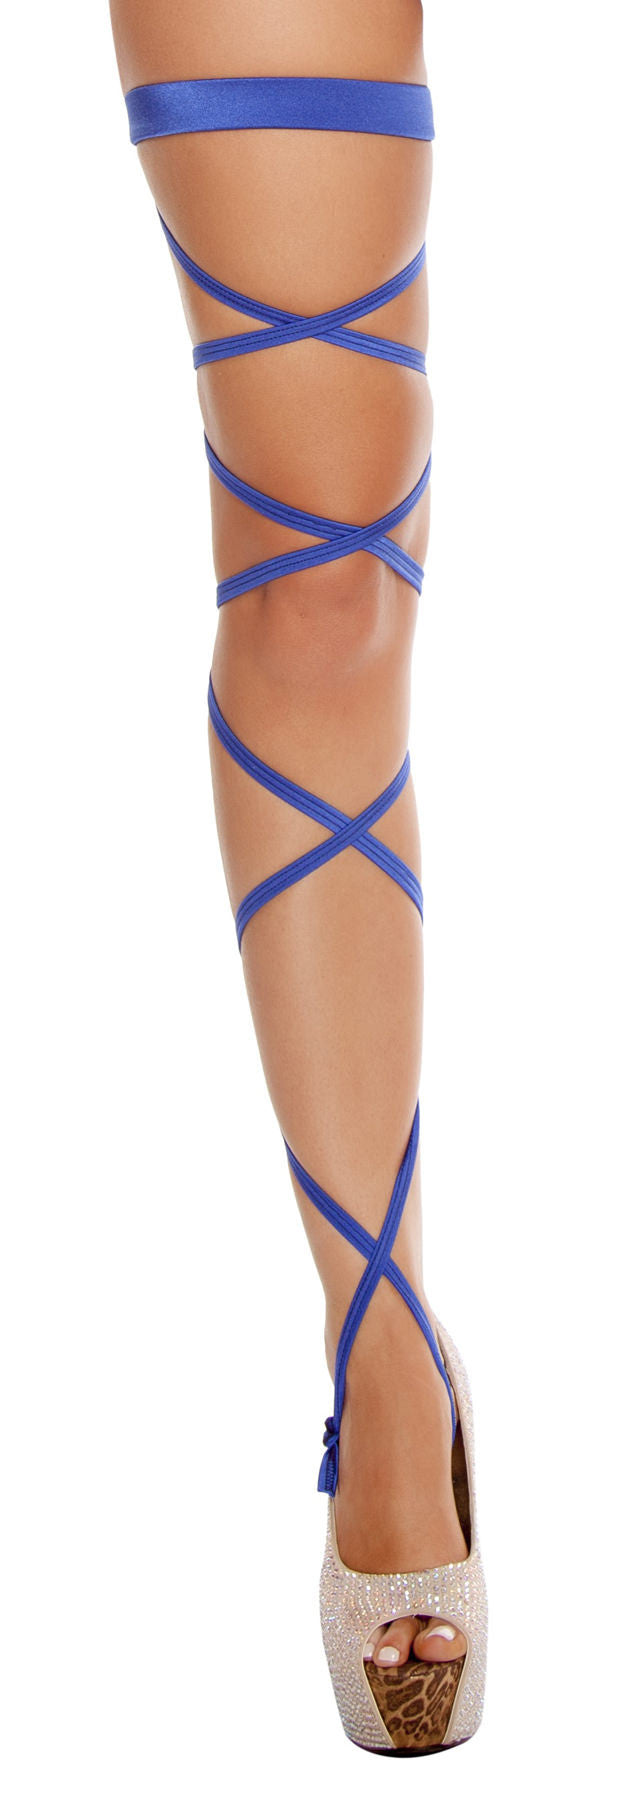 3231 Pair of Leg Strap with Attached Thigh Garter